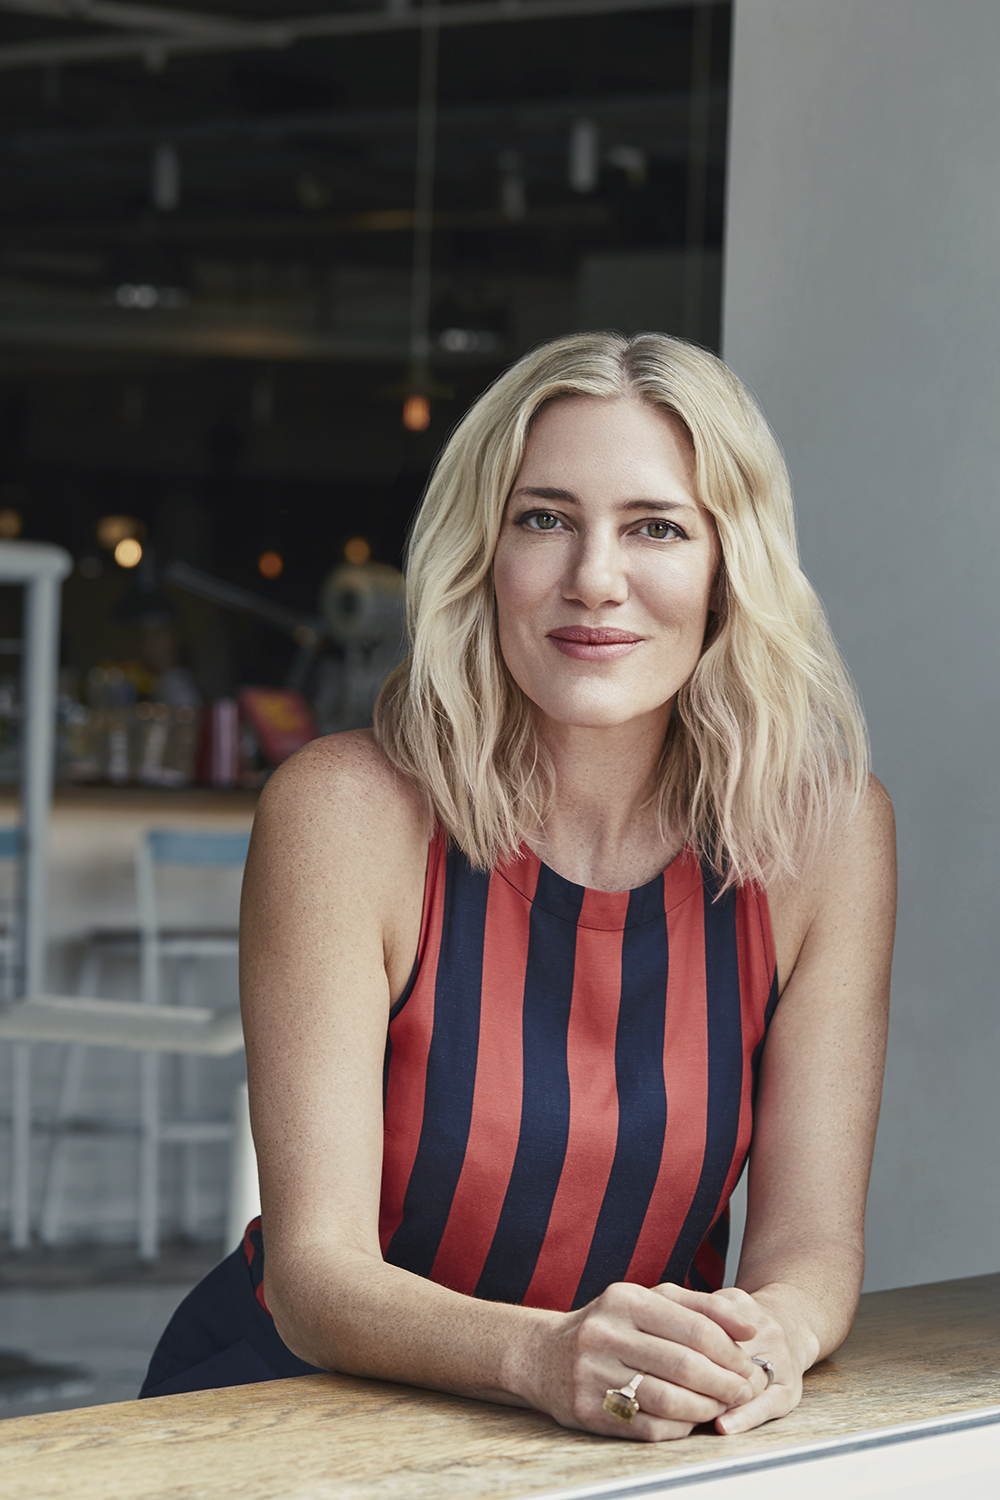 15: Kelly Doust talks about vintage fashion and women in their power age